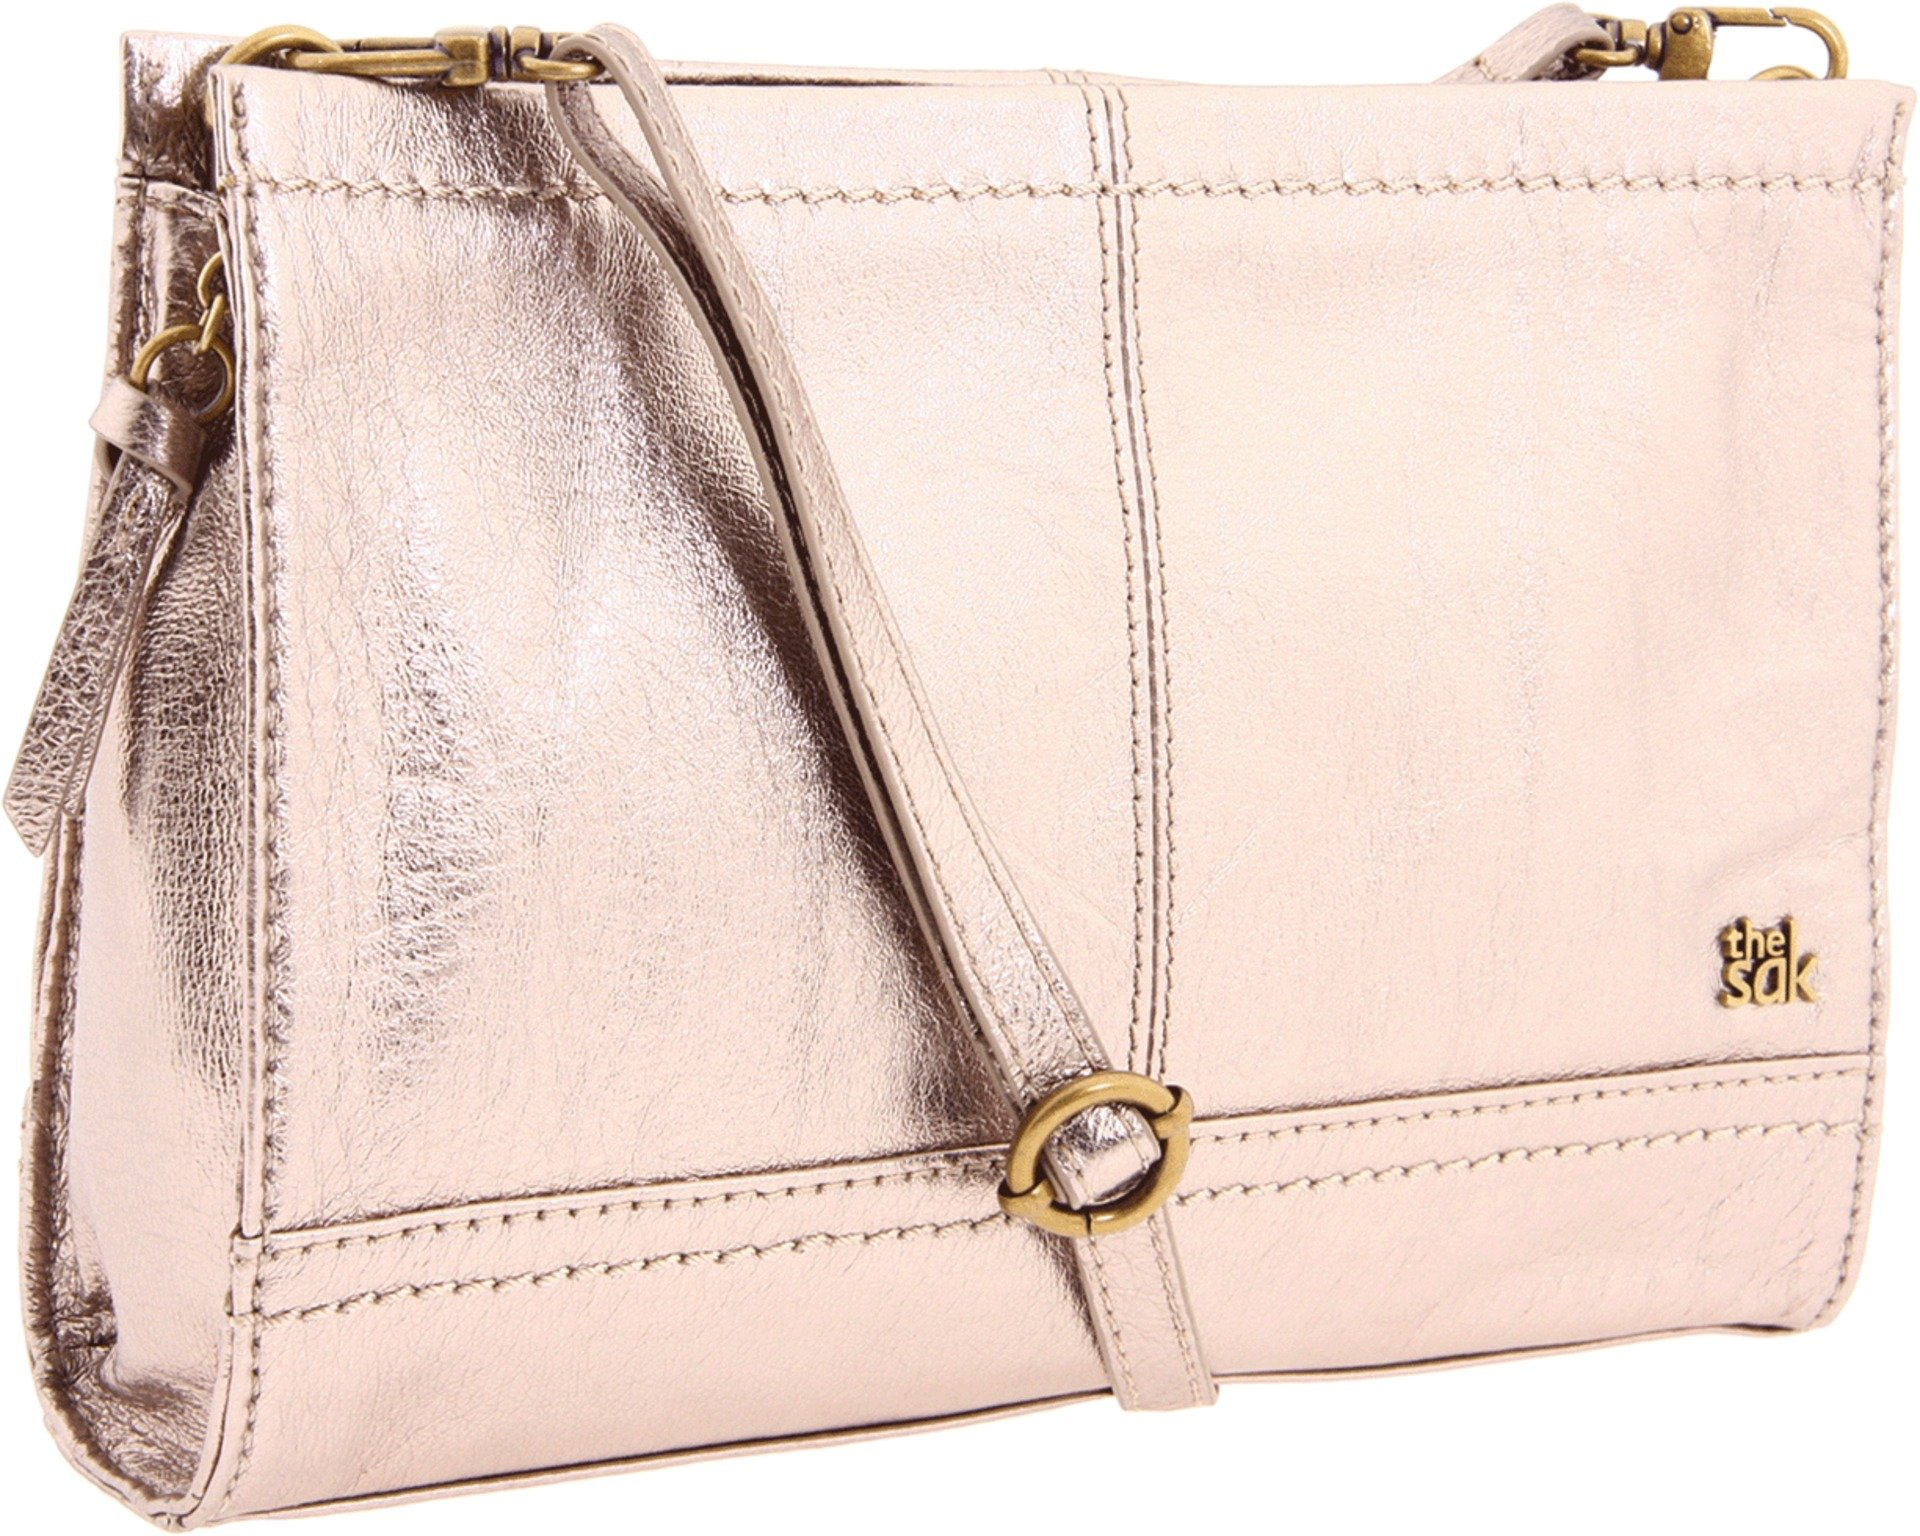 The SAK Iris Demi Clutch Handbag,Pyrite Metallic,One Size